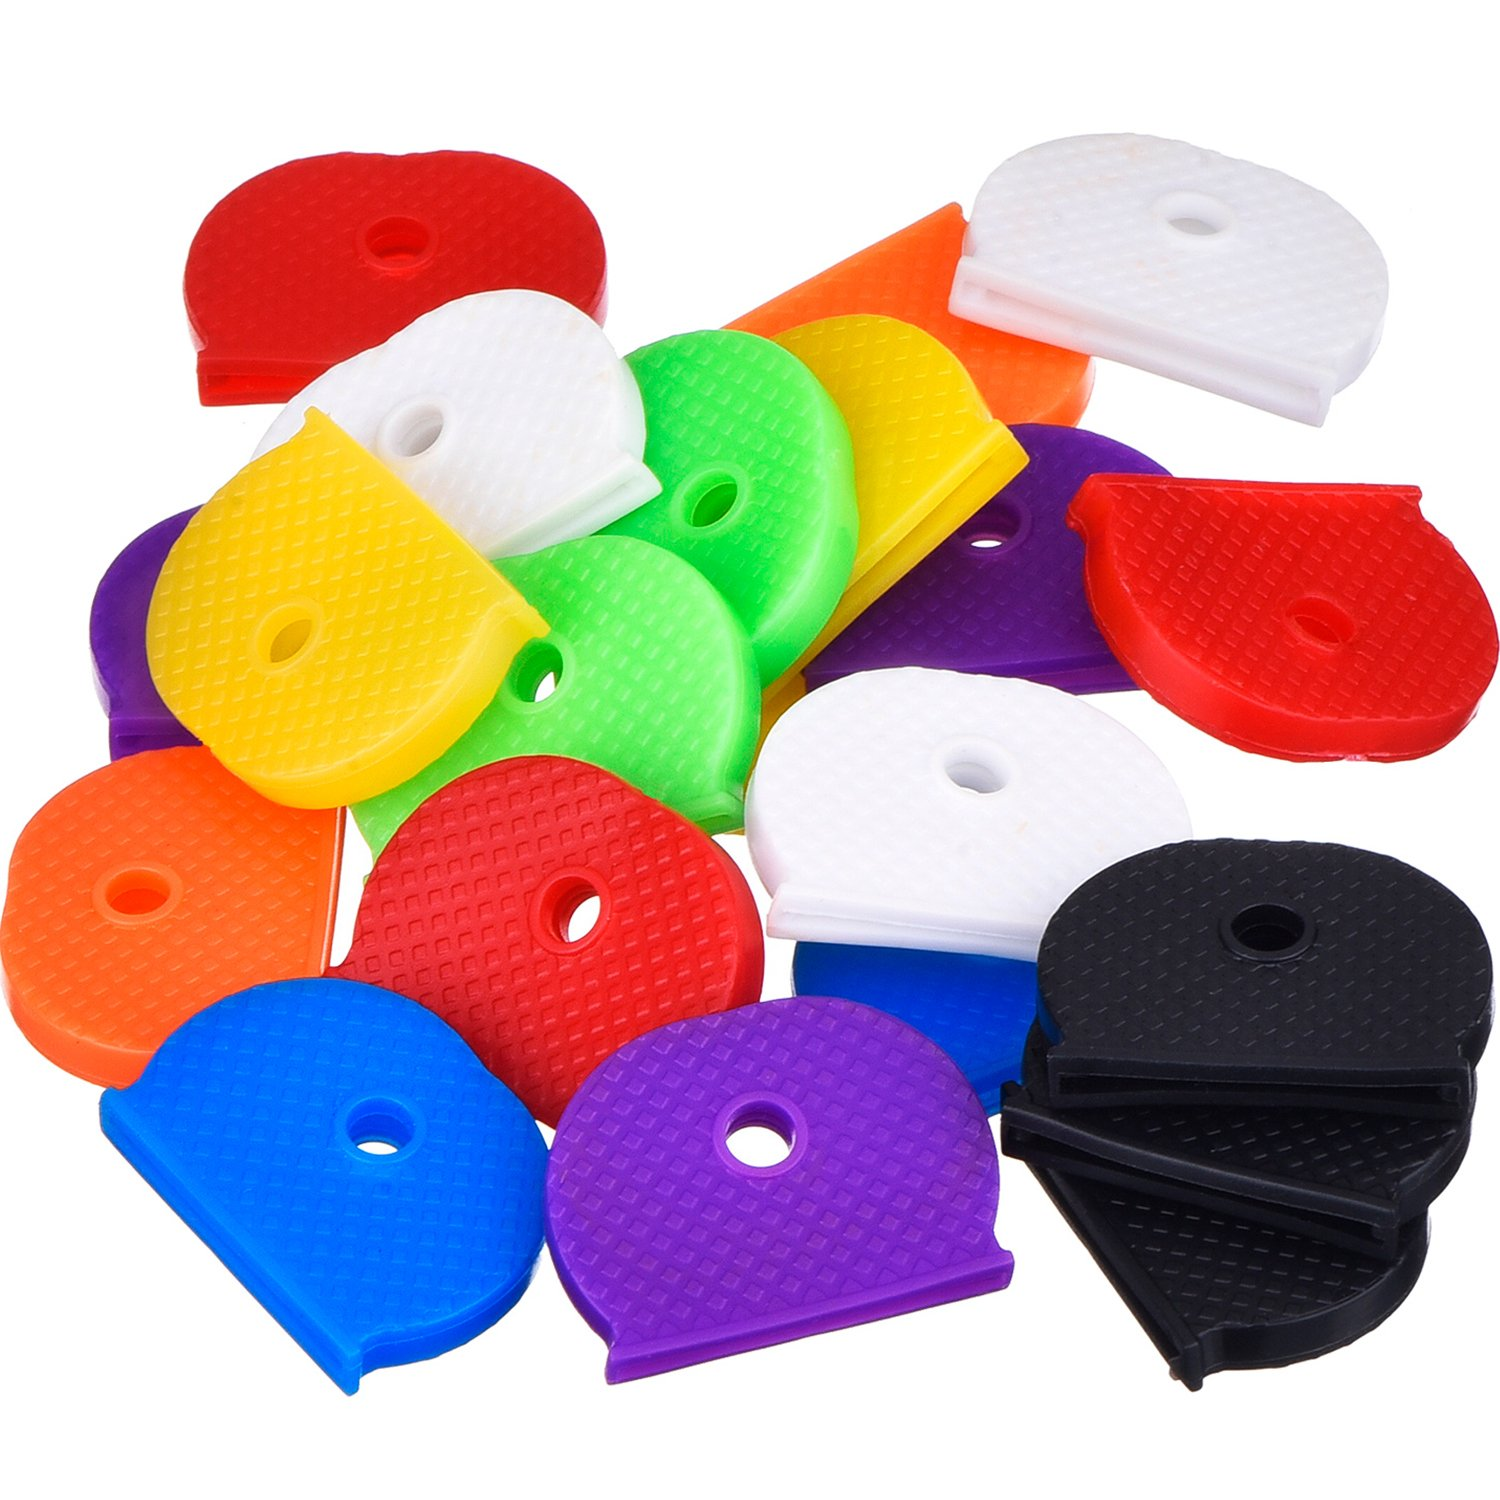 24 Key Caps With Flexible Key Cover For Easy Identification Of Door Keys, Multicolor